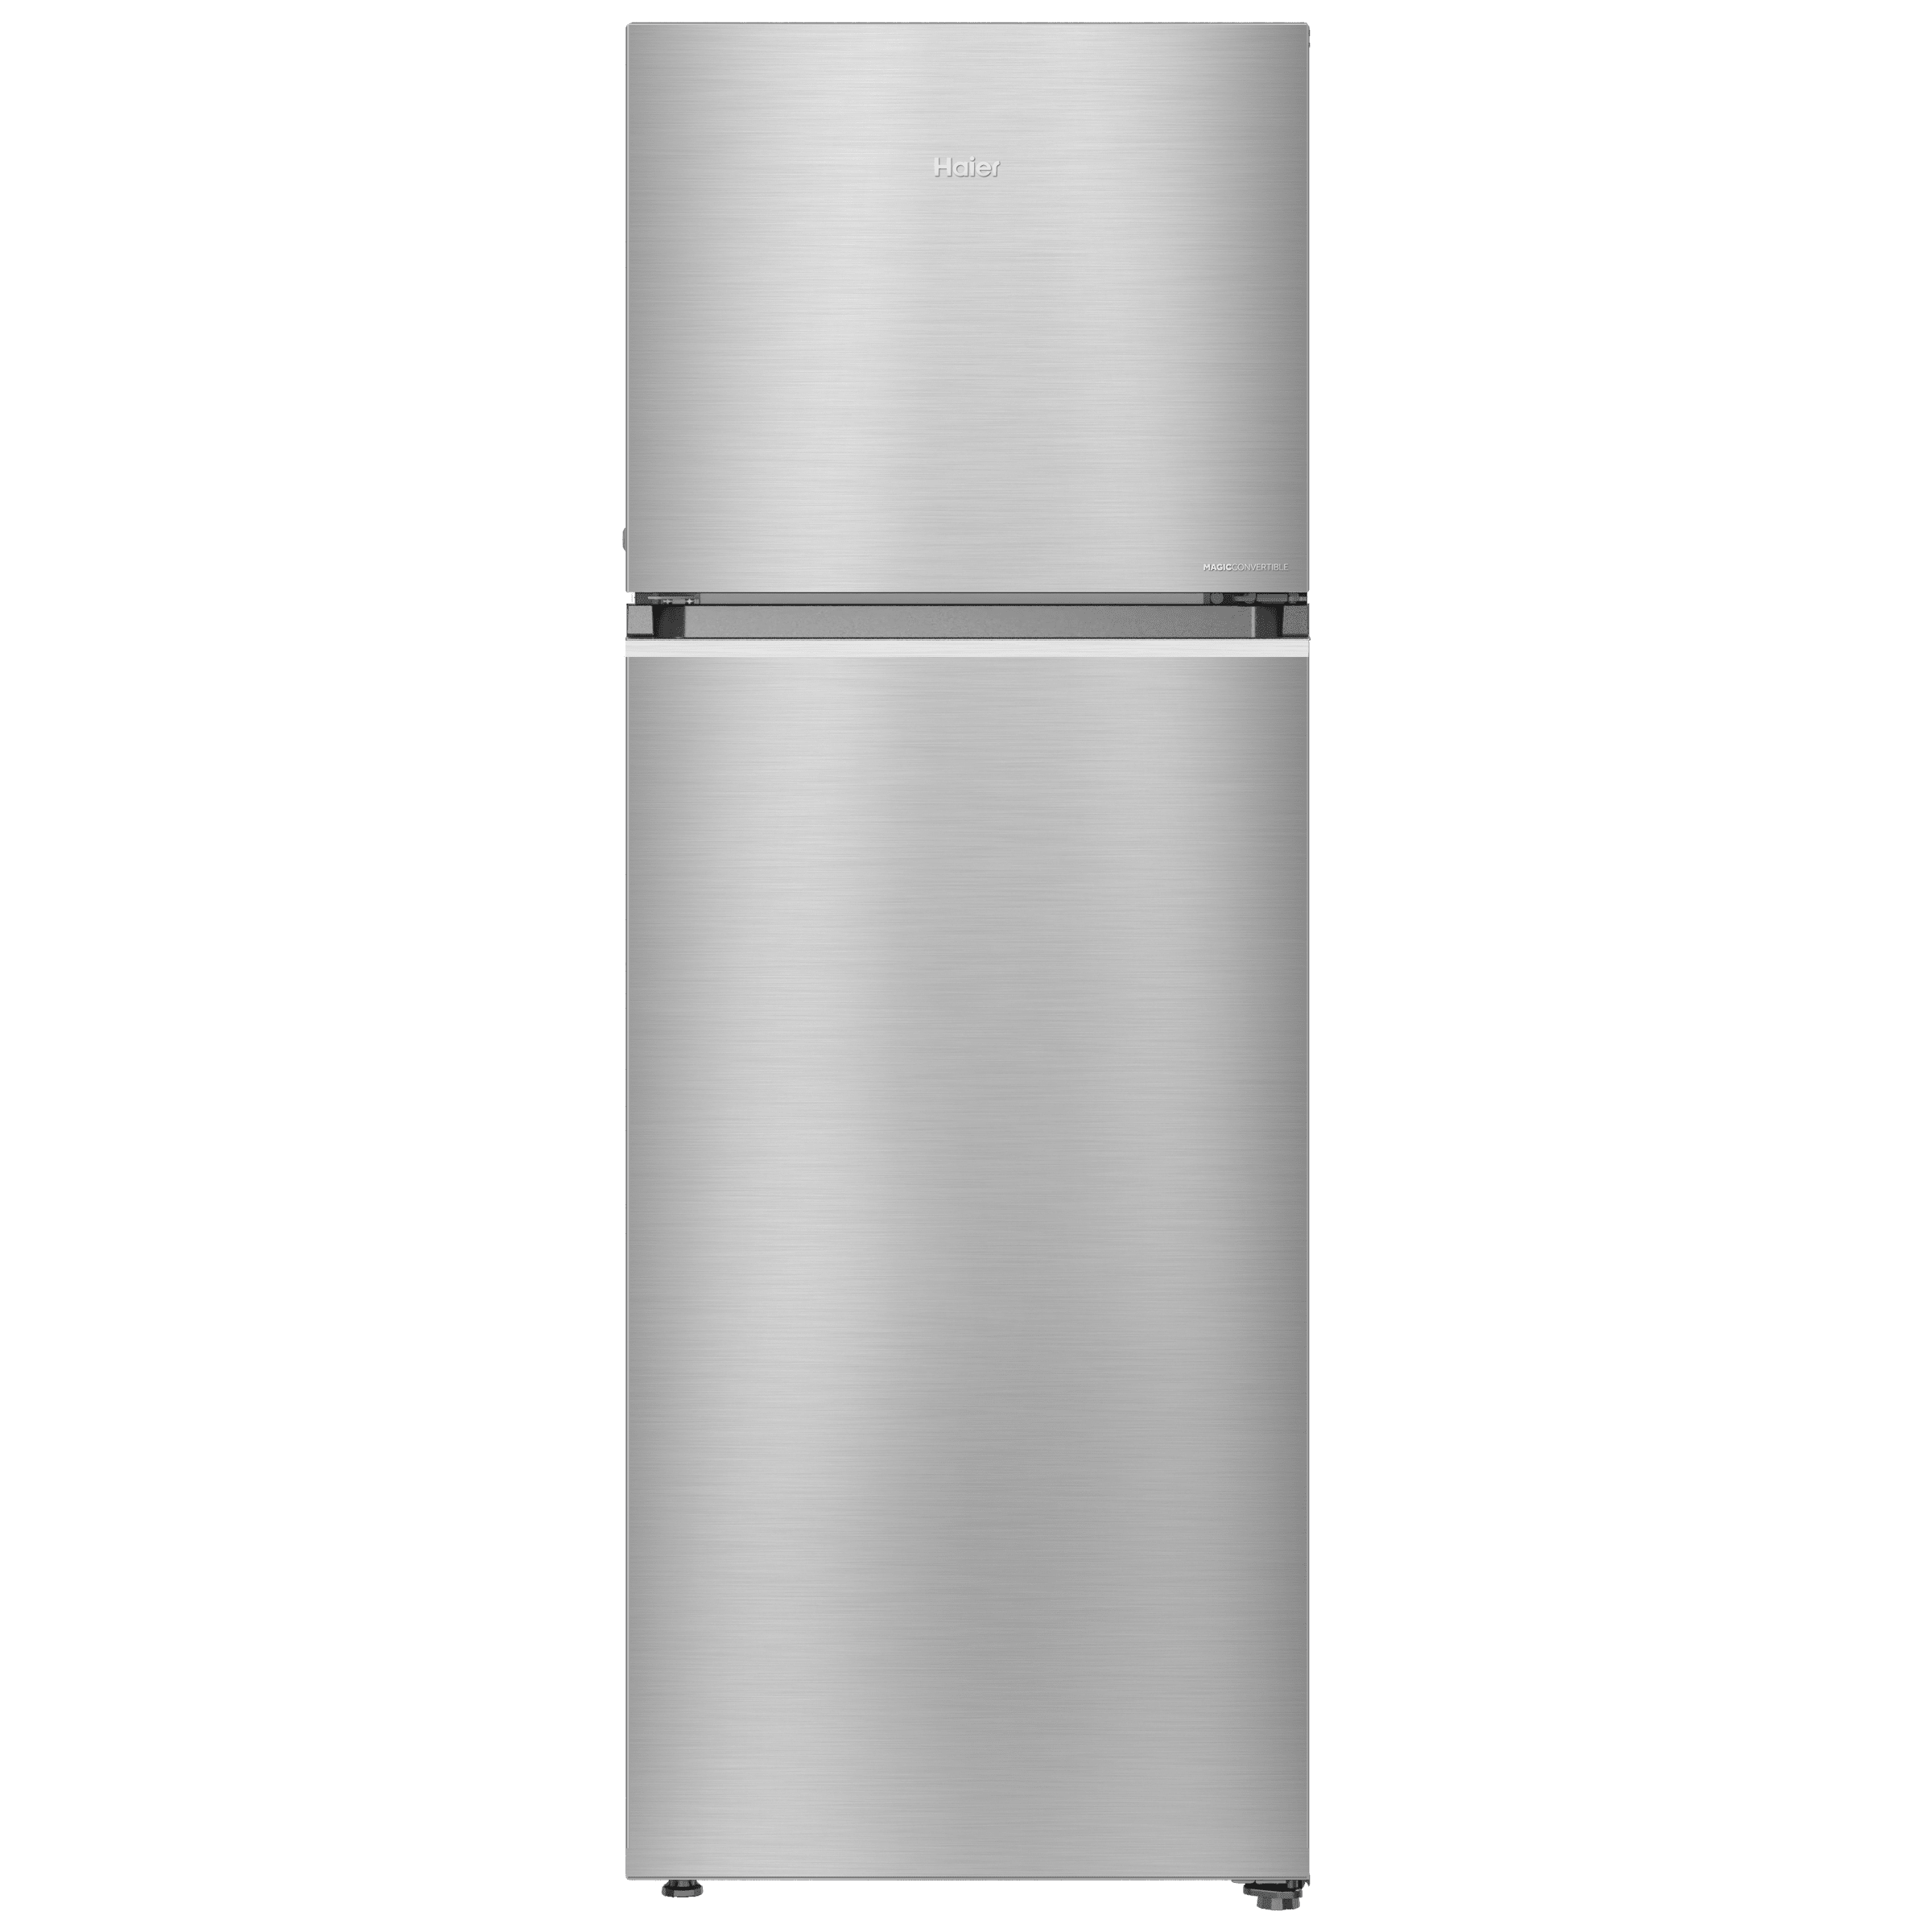 Haier Magic Convertible 345 Litres 3 Star Frost Free Triple Inverter Double Door Refrigerator (10-in-1 Convertible Mode, HRF-3654CIS-E, Inox Steel)